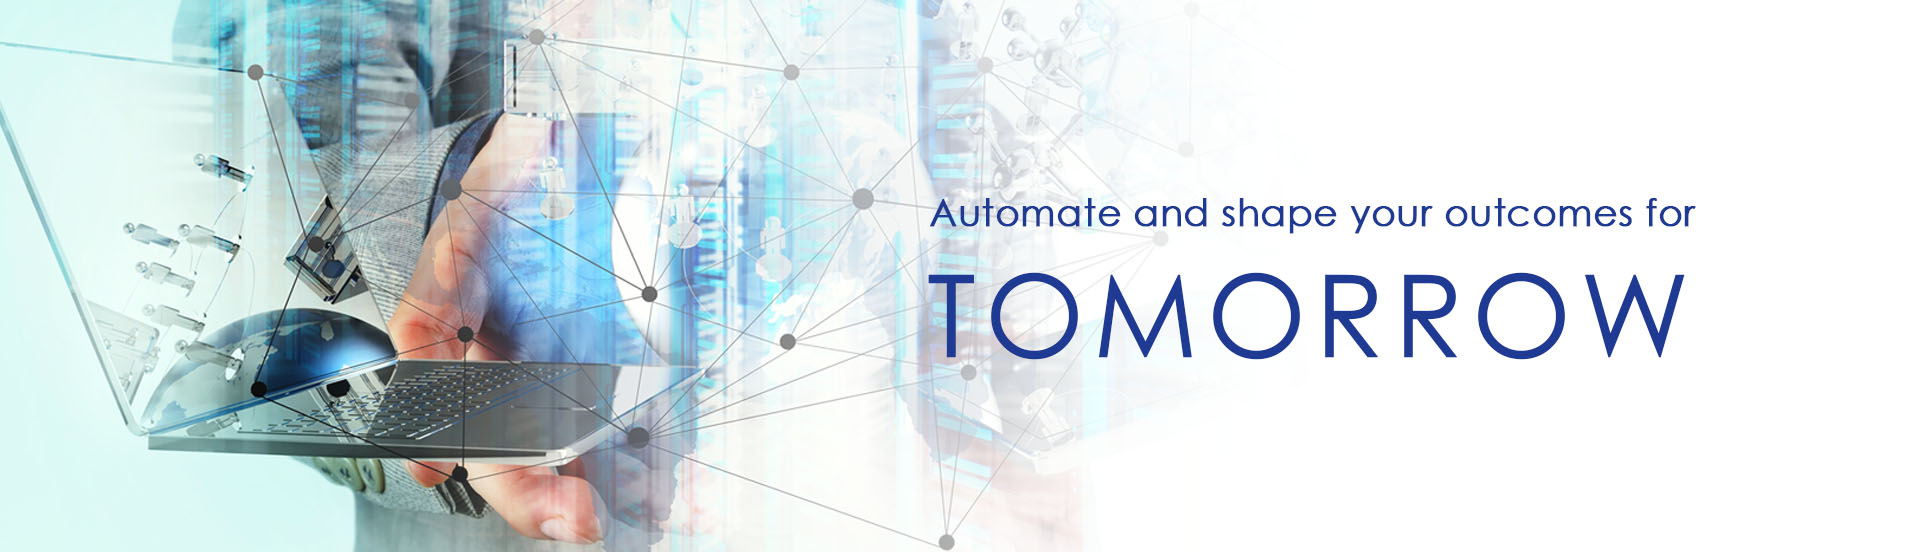 header reads automate and shape your outcomes for tomorrow